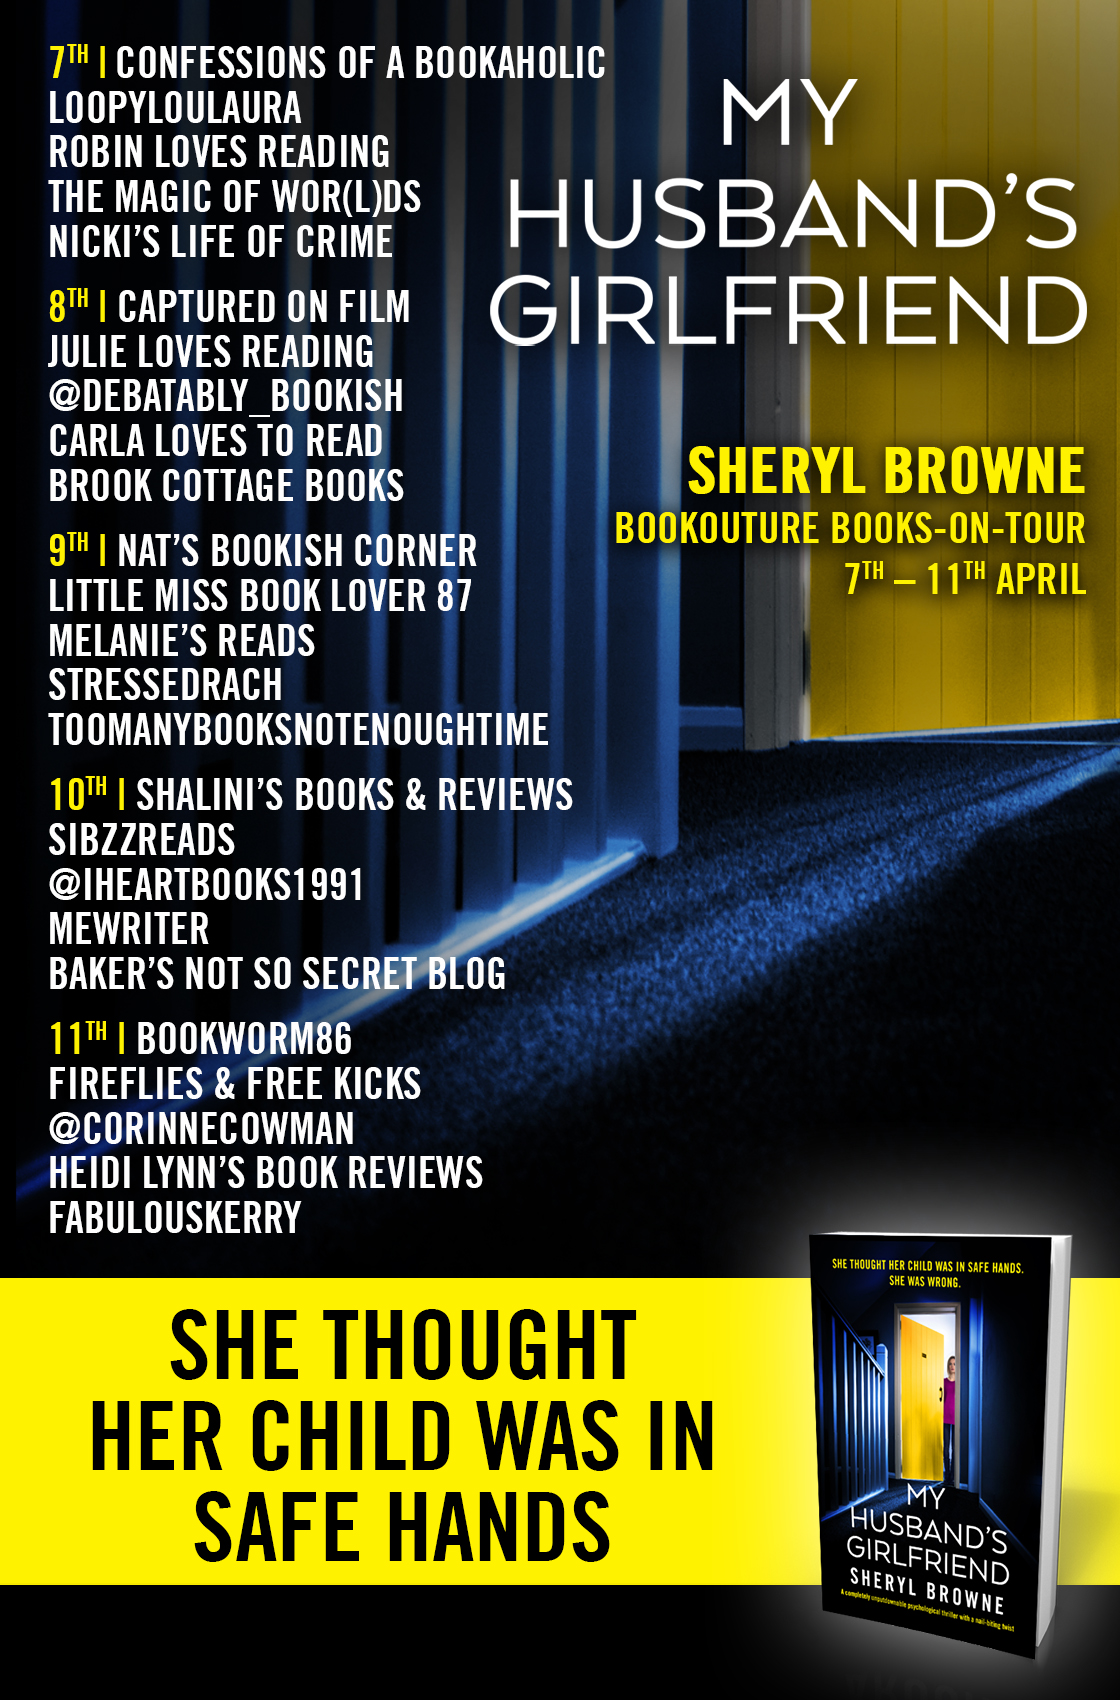 My Husband's Girlfriend blog tour banner